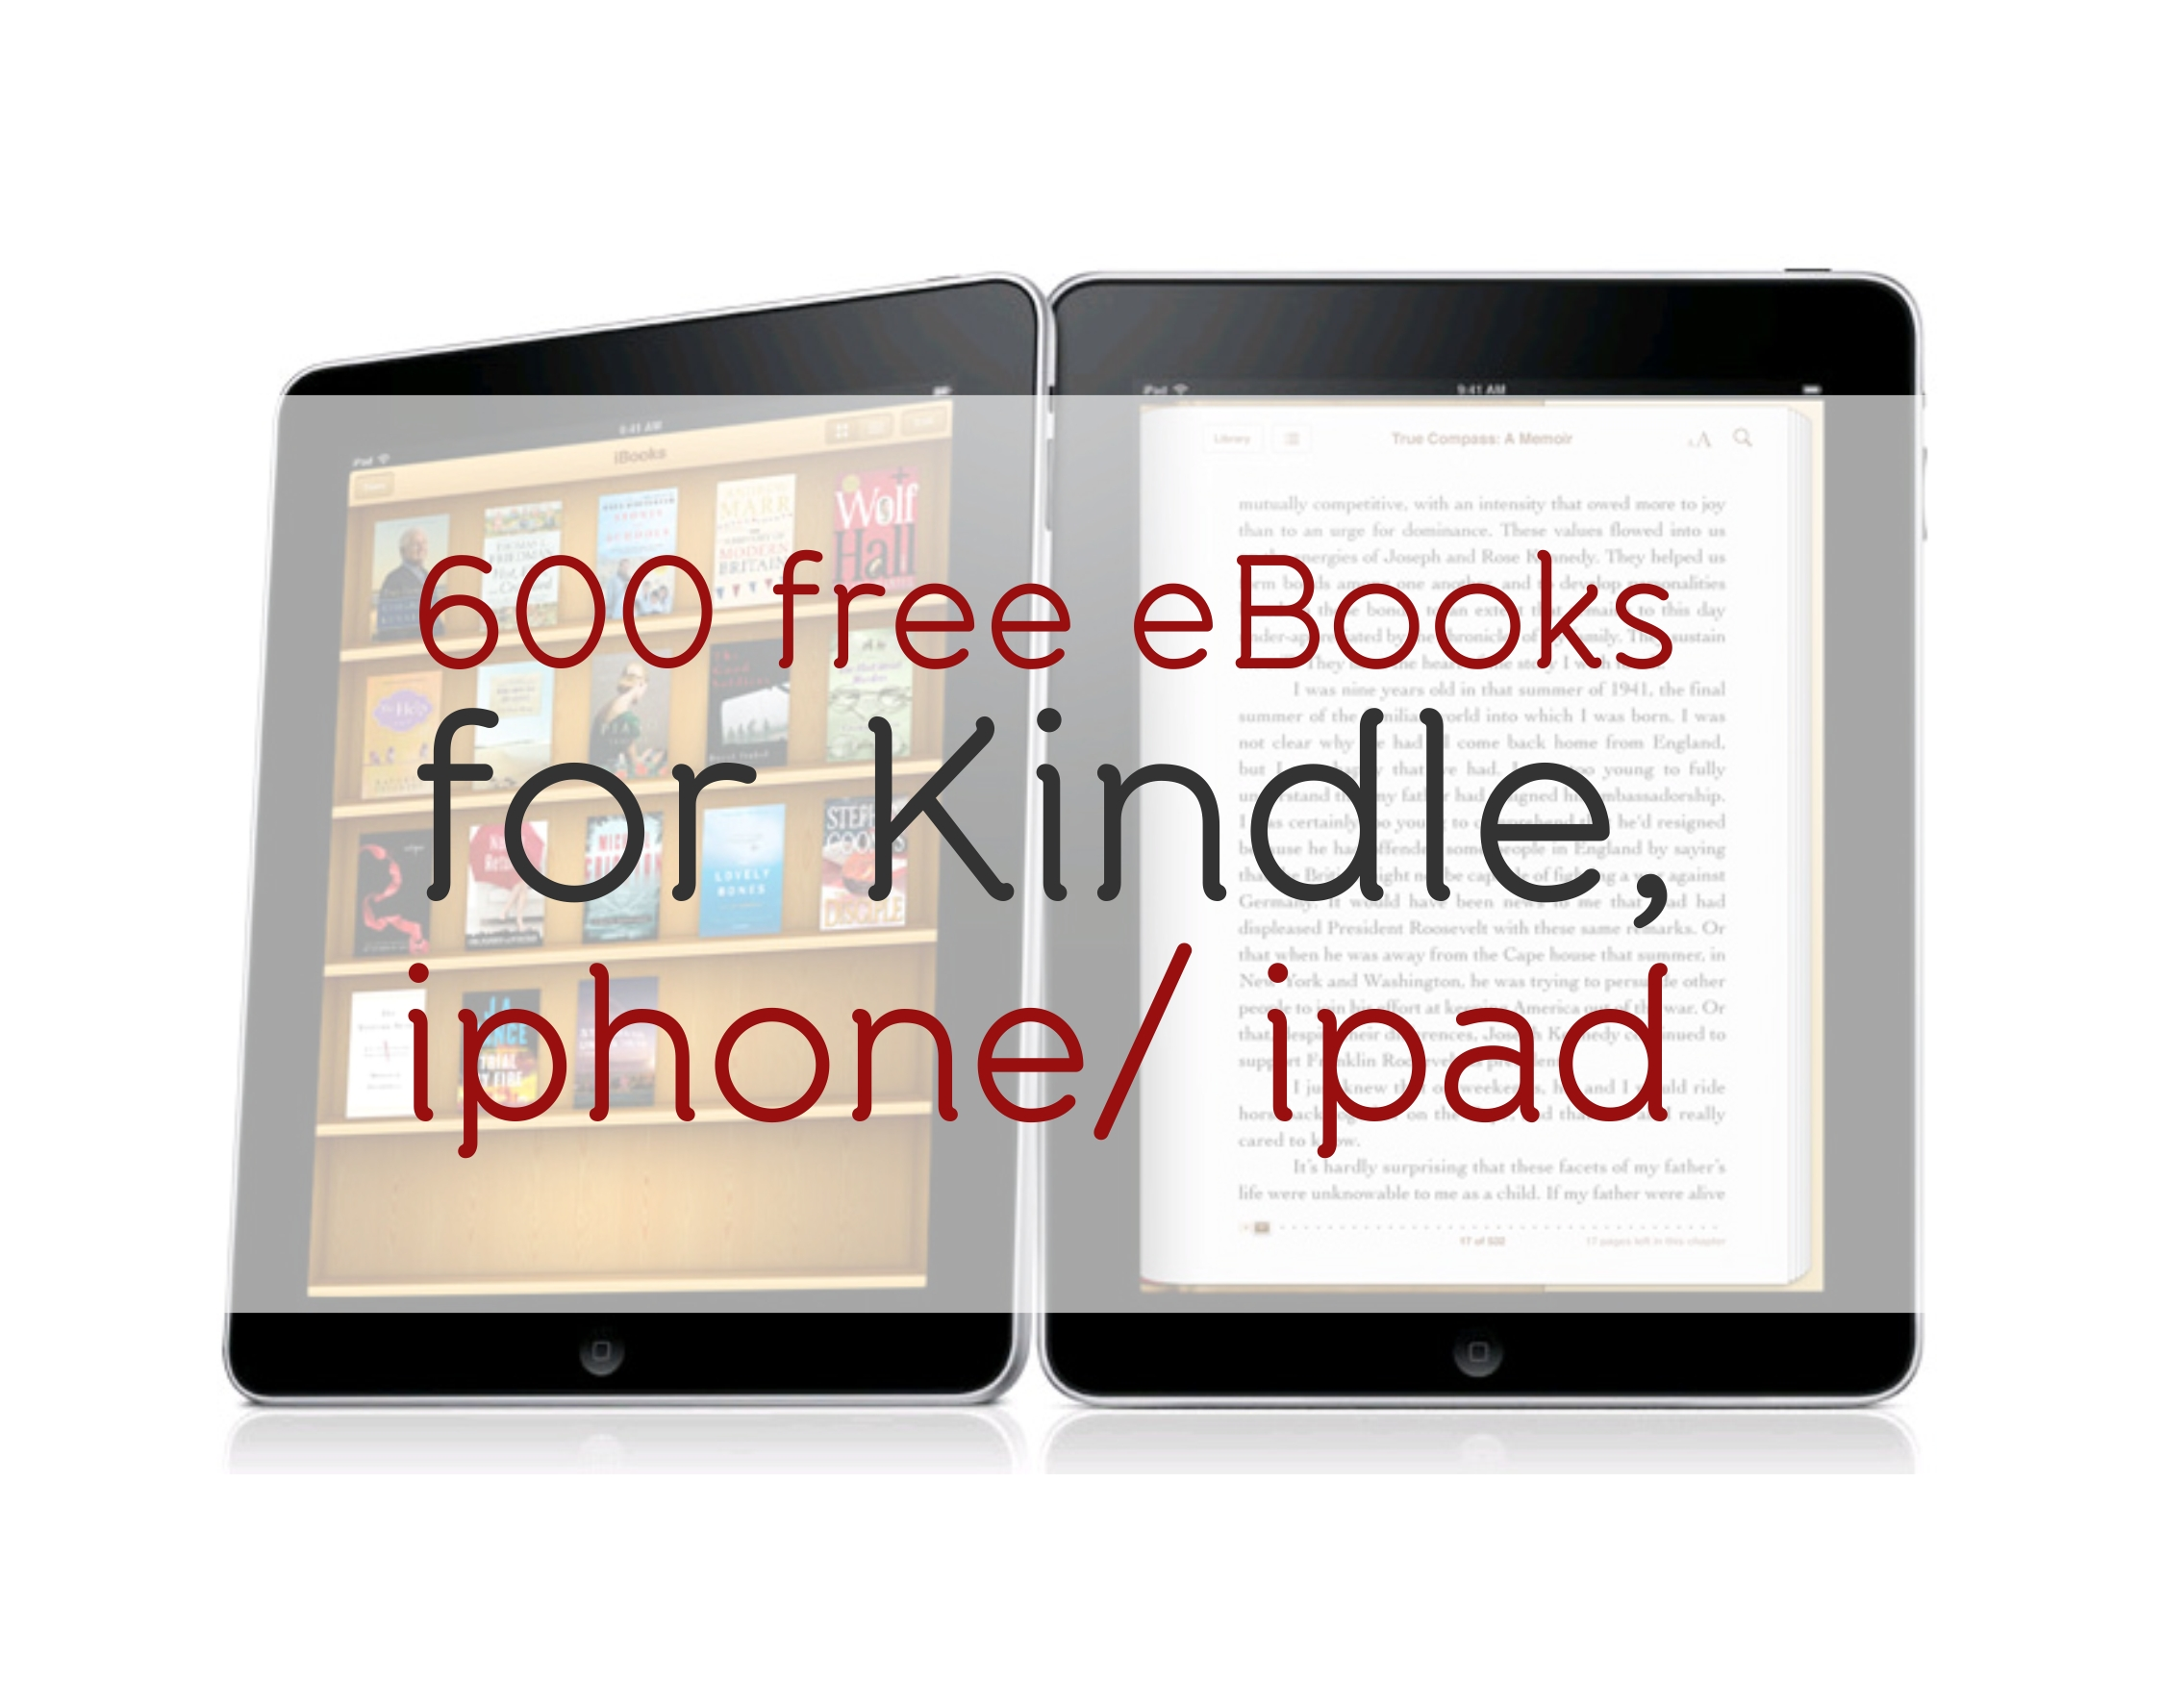 Free Books2 600 Free Books For Kindle Iphone Ipad  Self Descriptive Words For Resume